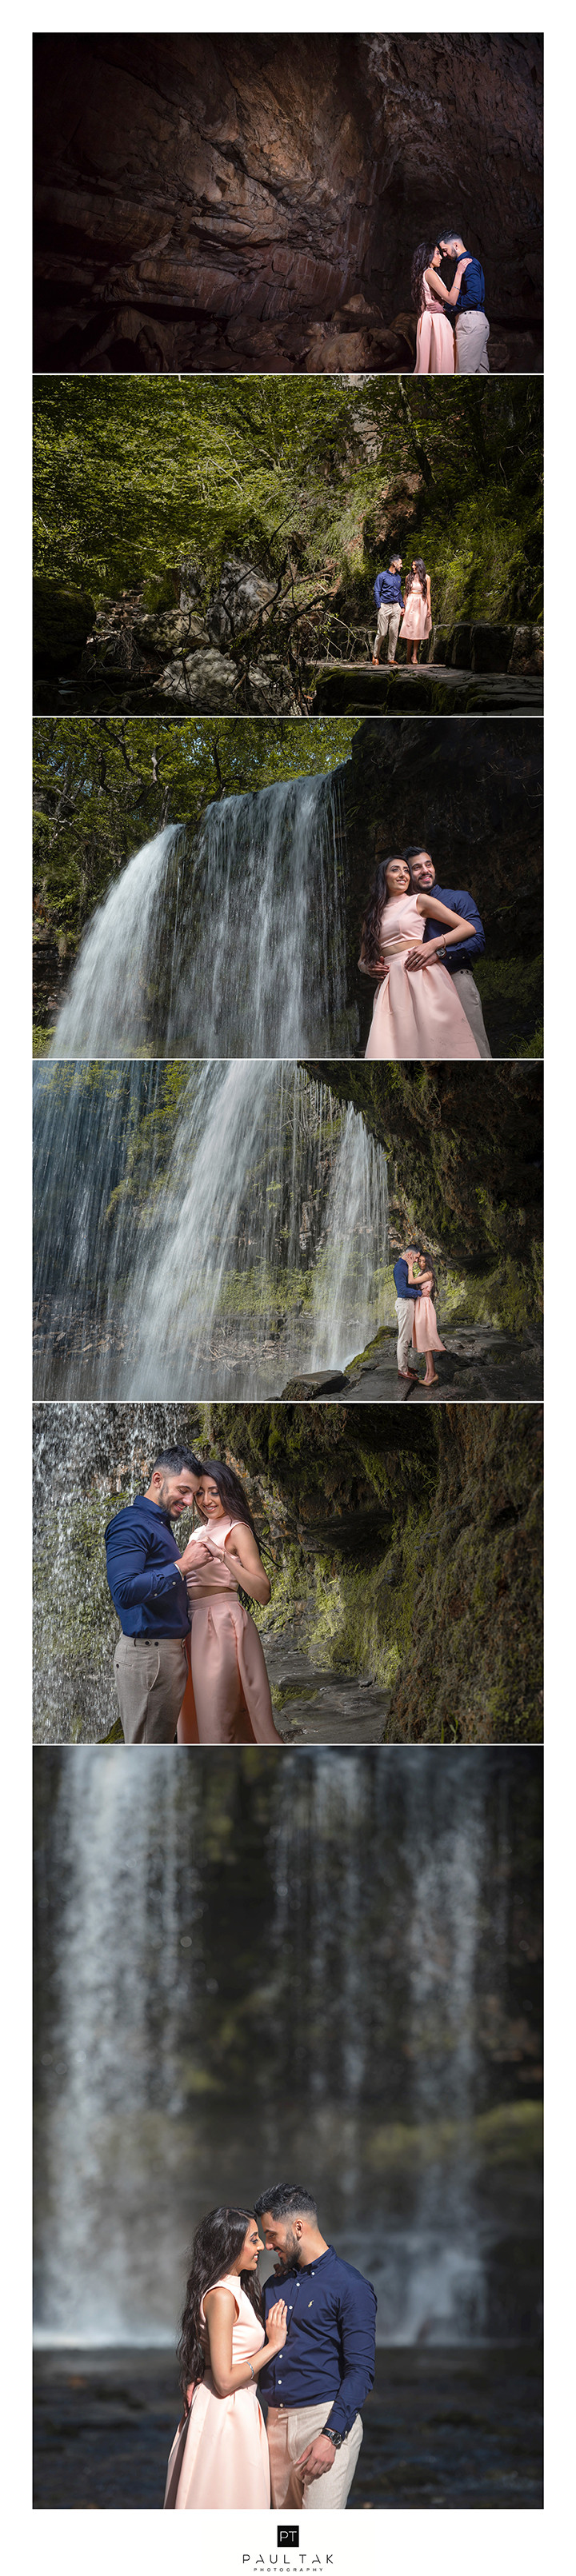 mixed images from pre shoot in wales indian wedding photogrpher